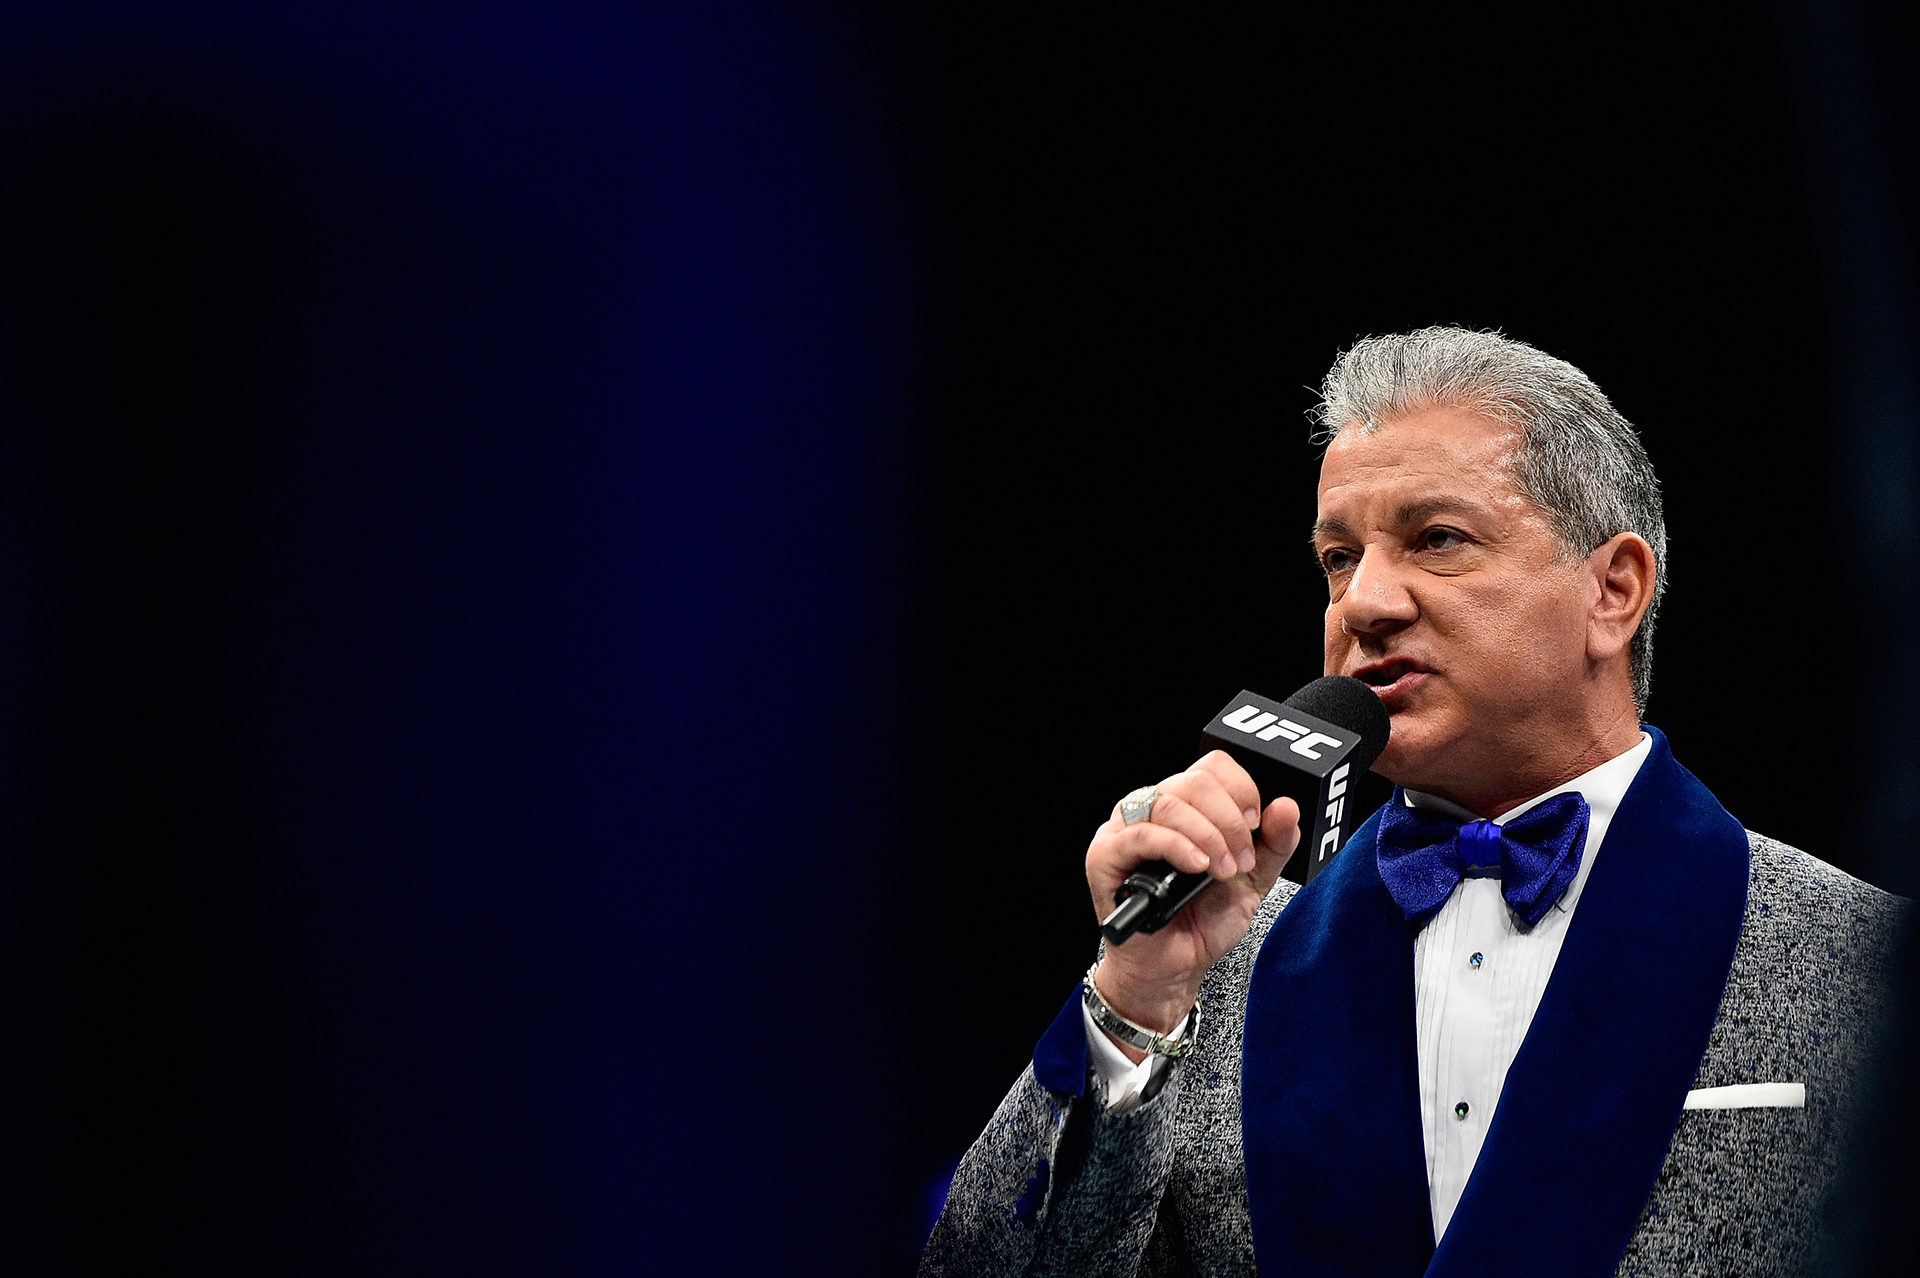 Bruce Buffer introduces the fighters prior to their welterweight bout between Randy Brown of Jamaica and Mickey Gall during the UFC 217 event at Madison Square Garden on November 4, 2017 in New York City. (Photo by Jeff Bottari/Zuffa LLC)